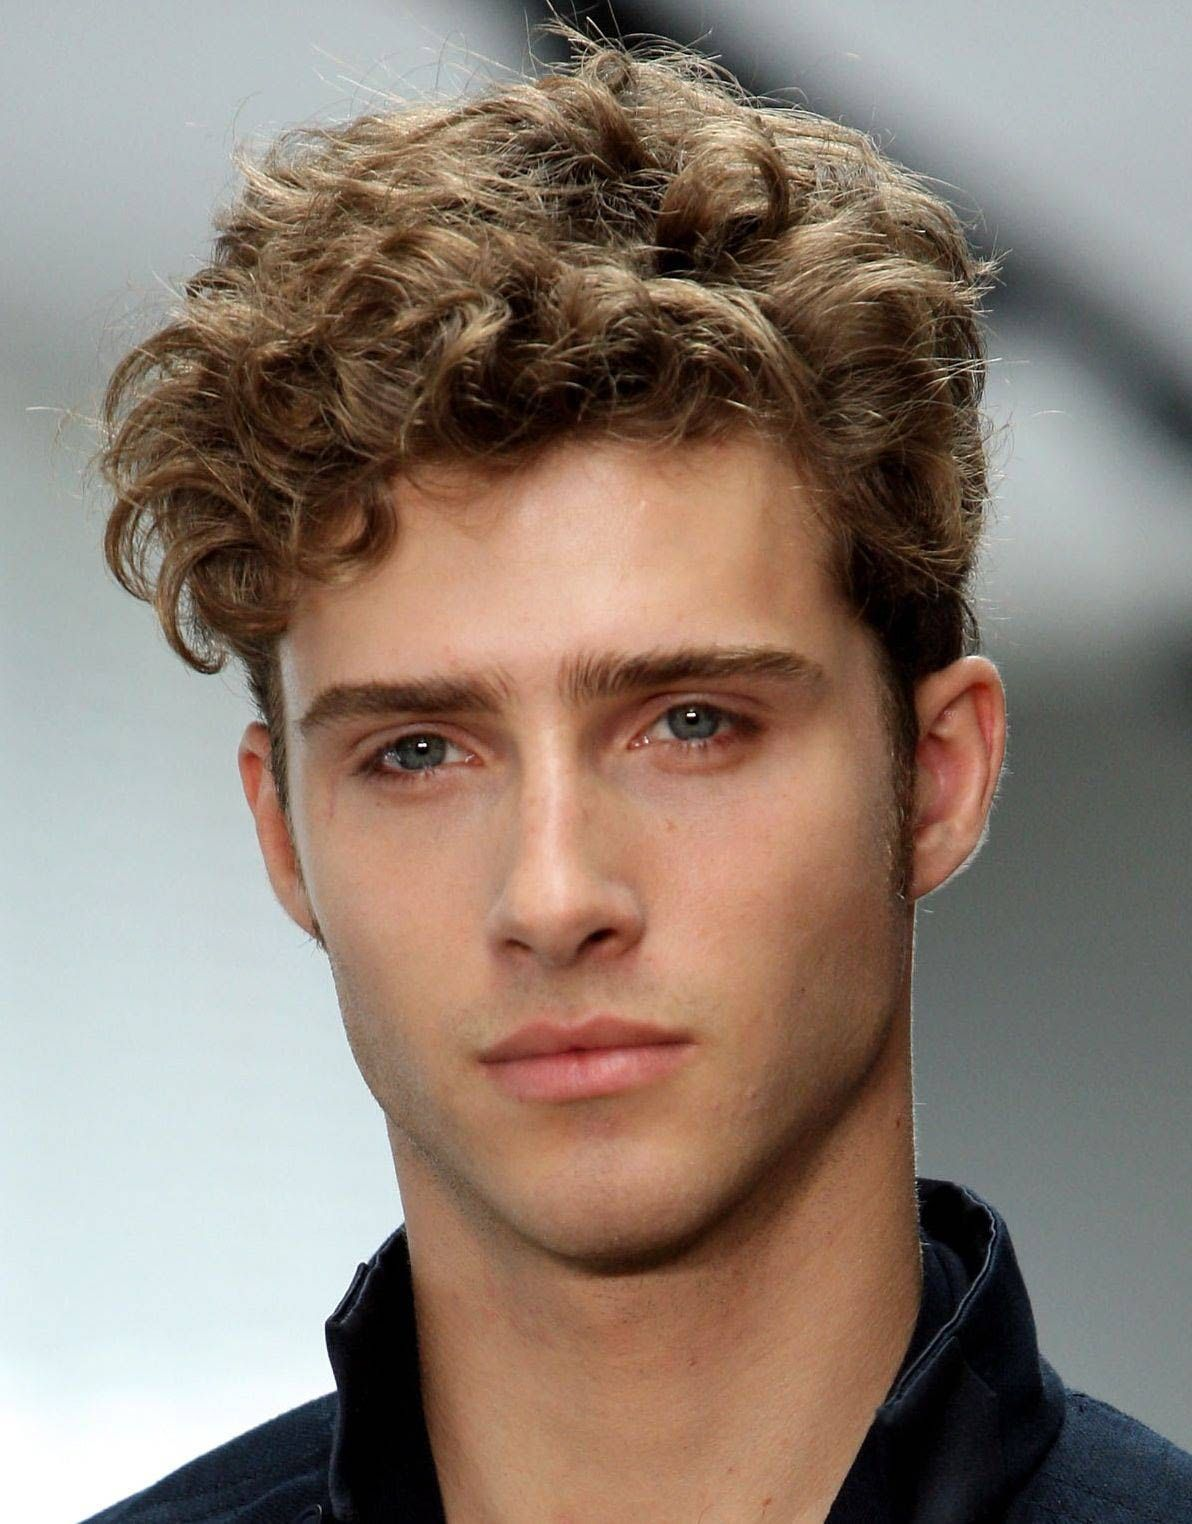 Here S Exactly How To Style Your Curly Hair Men S Curly Hairstyles Curly Hair Men Thick Curly Hair